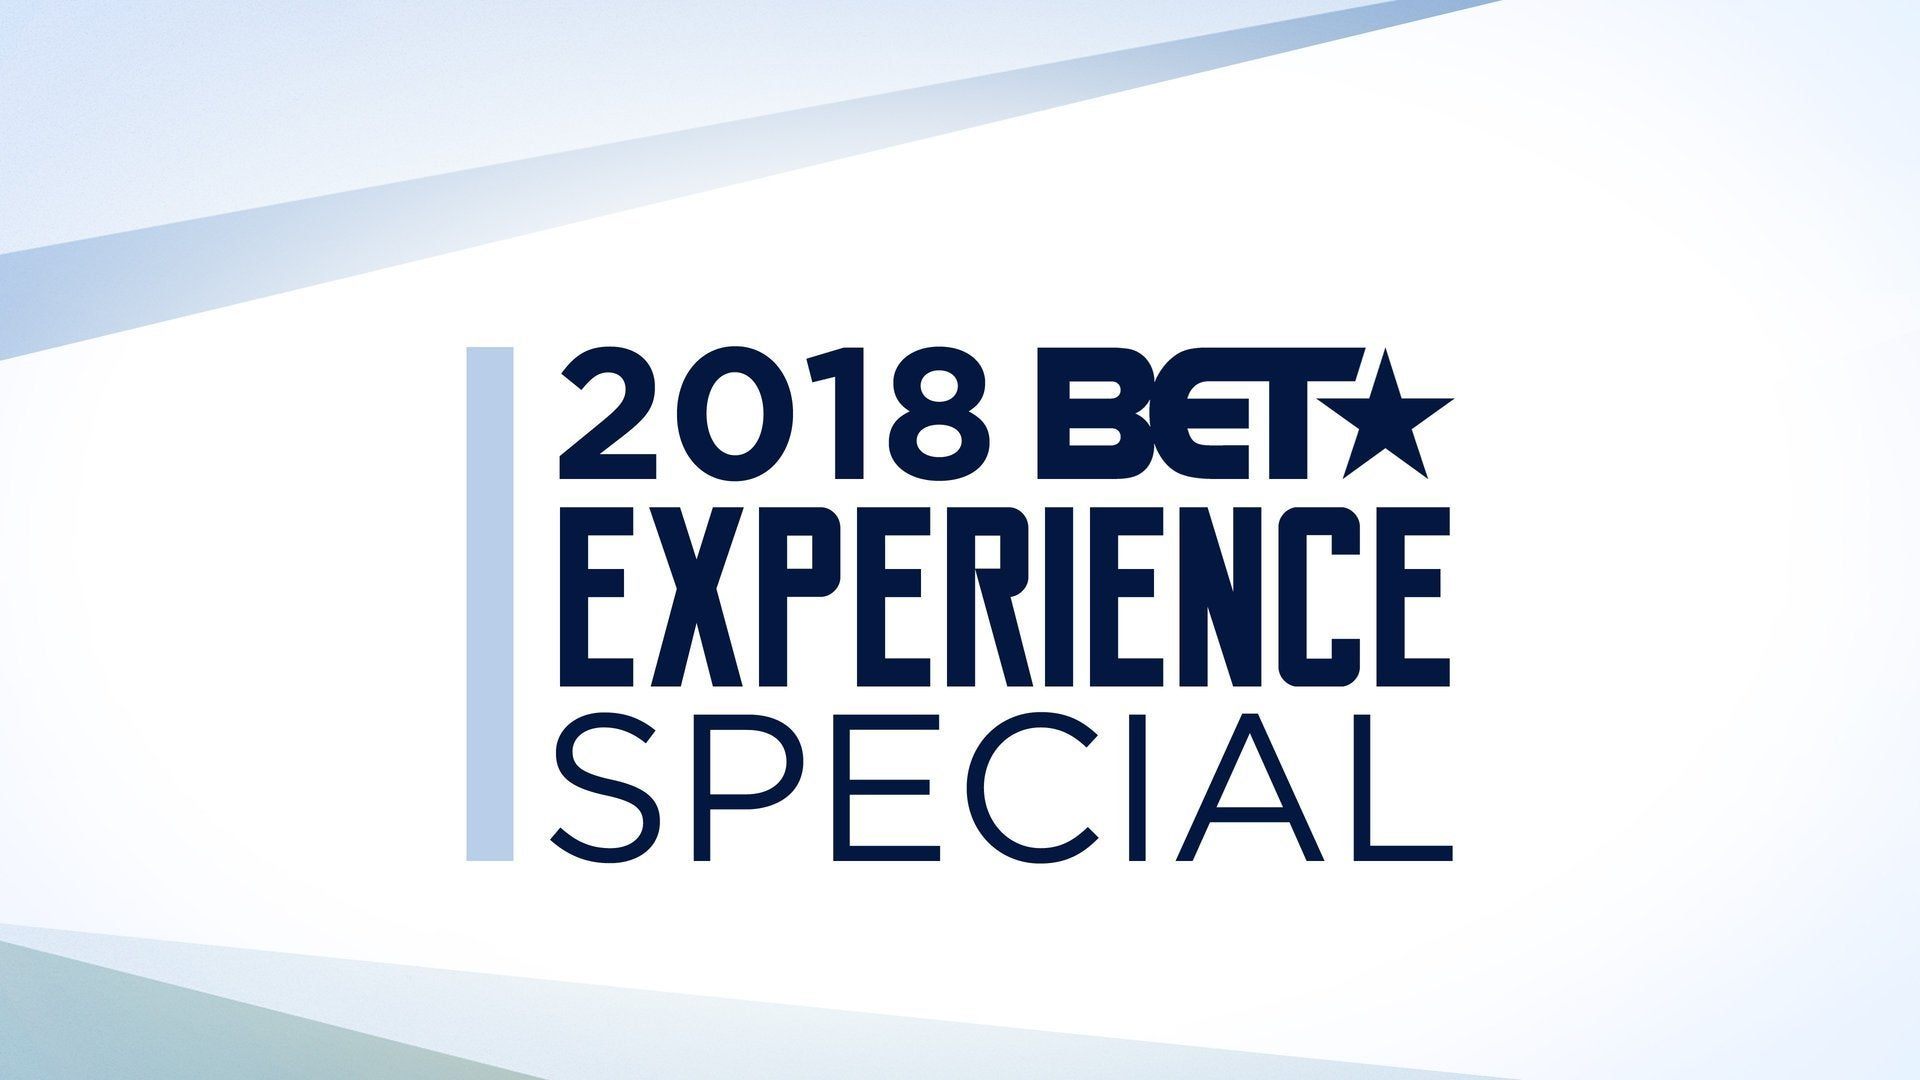 2018 BET Experience Special